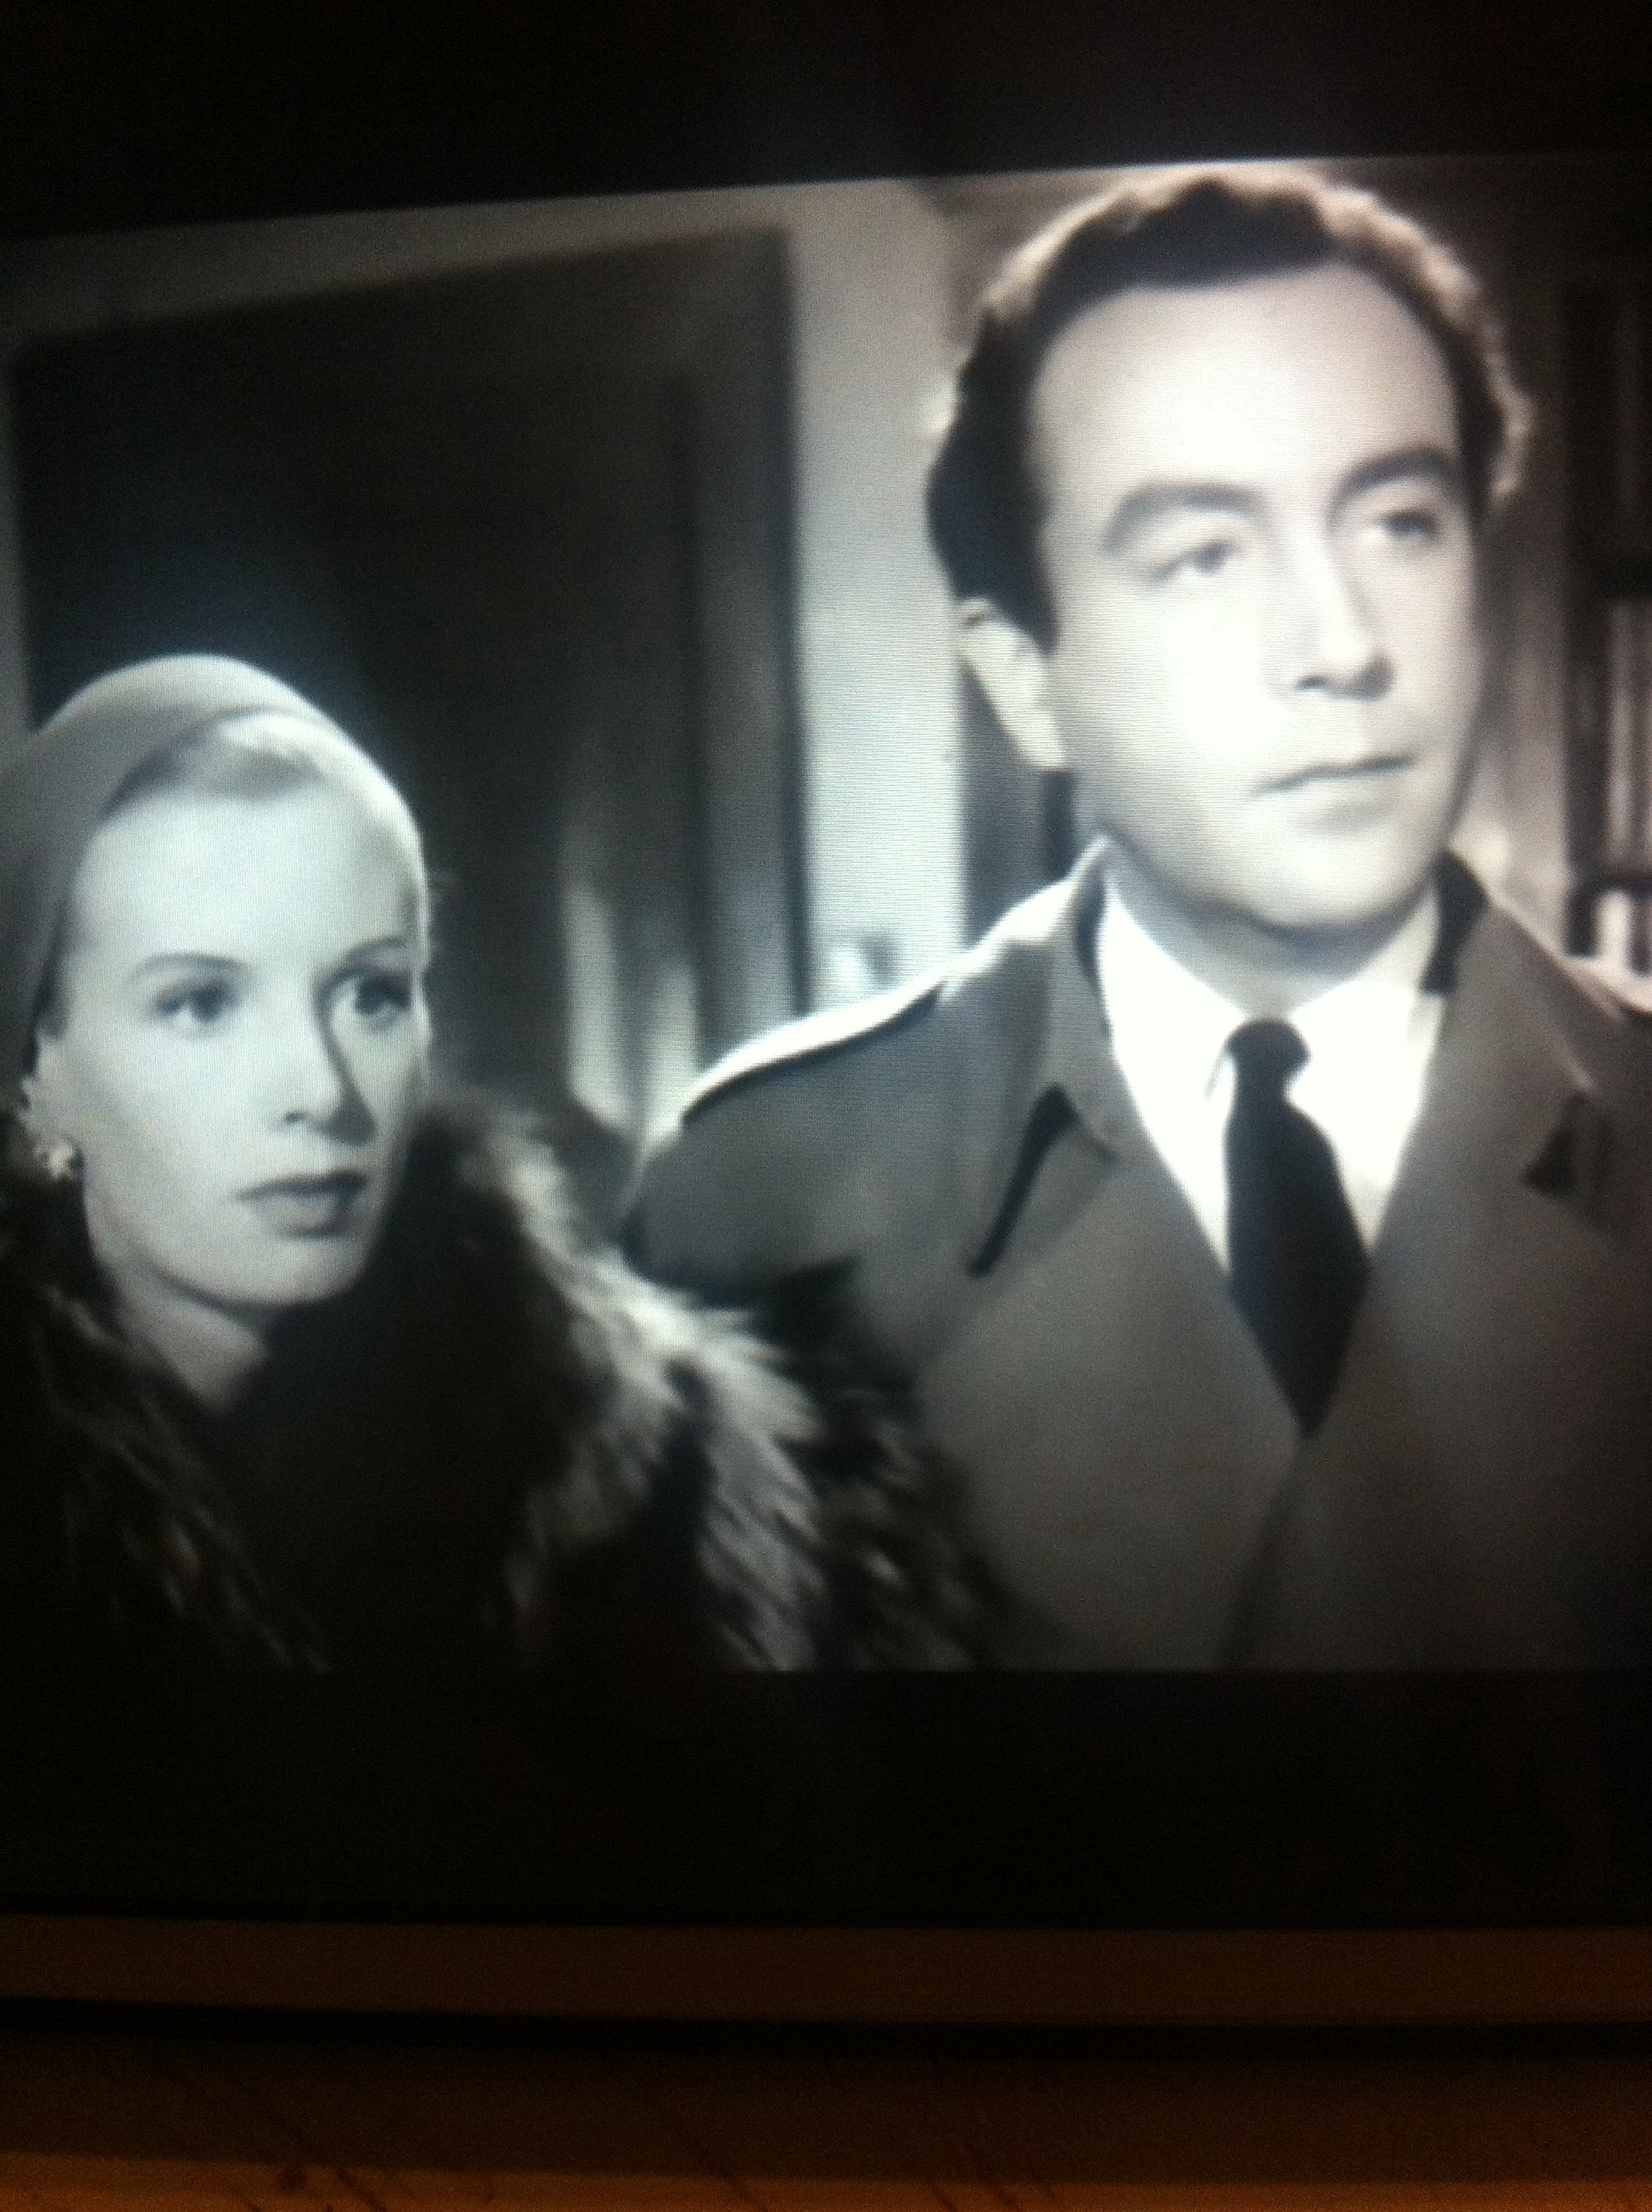 Peggy Evans and Dennis Price in Murder at 3am (1953)